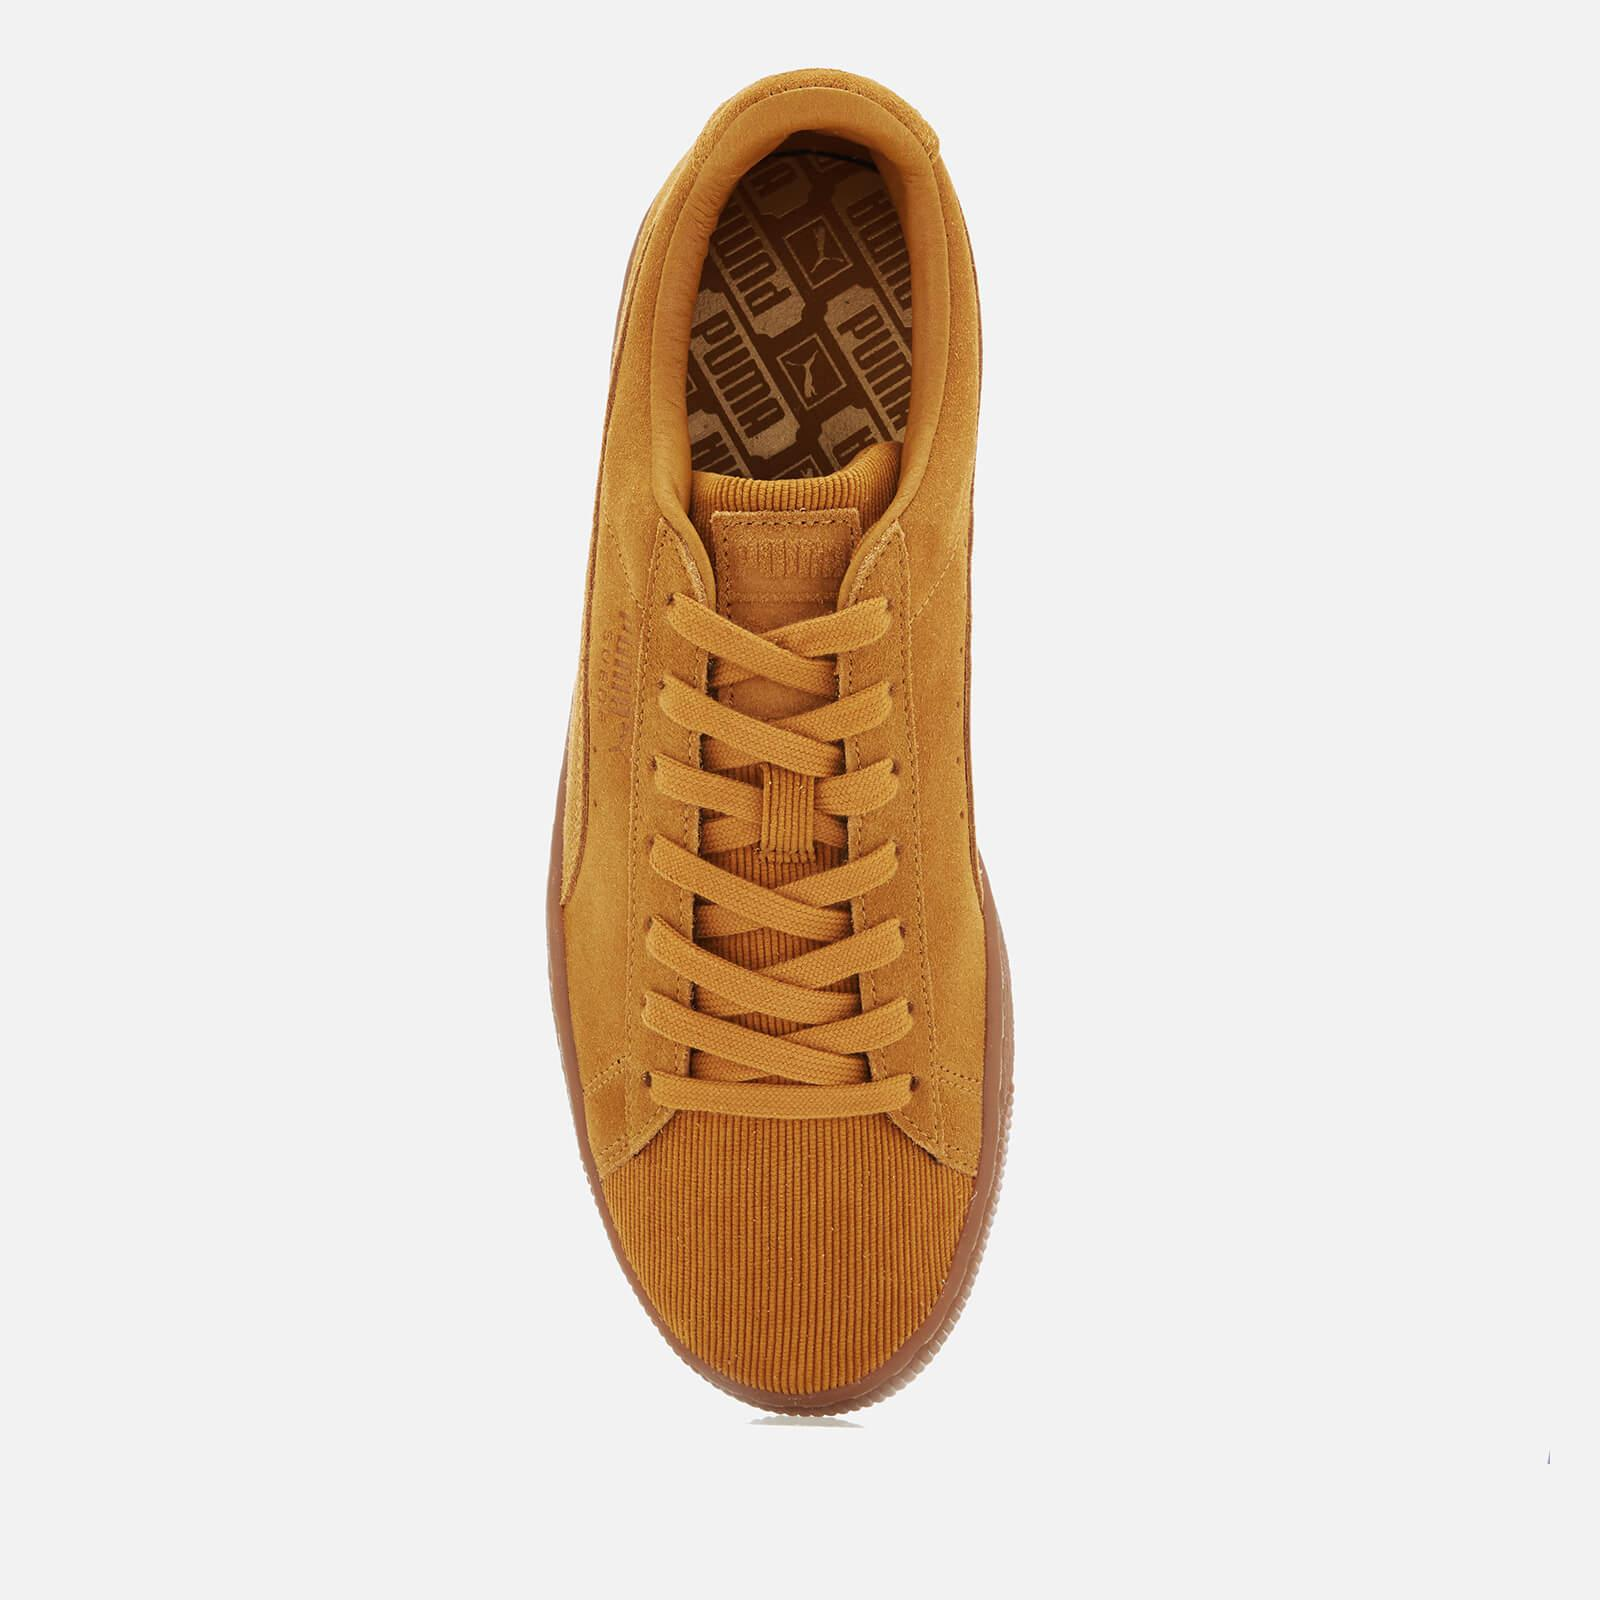 PUMA - Yellow Suede Classic Pincord Trainers for Men - Lyst. View fullscreen f723c0b25